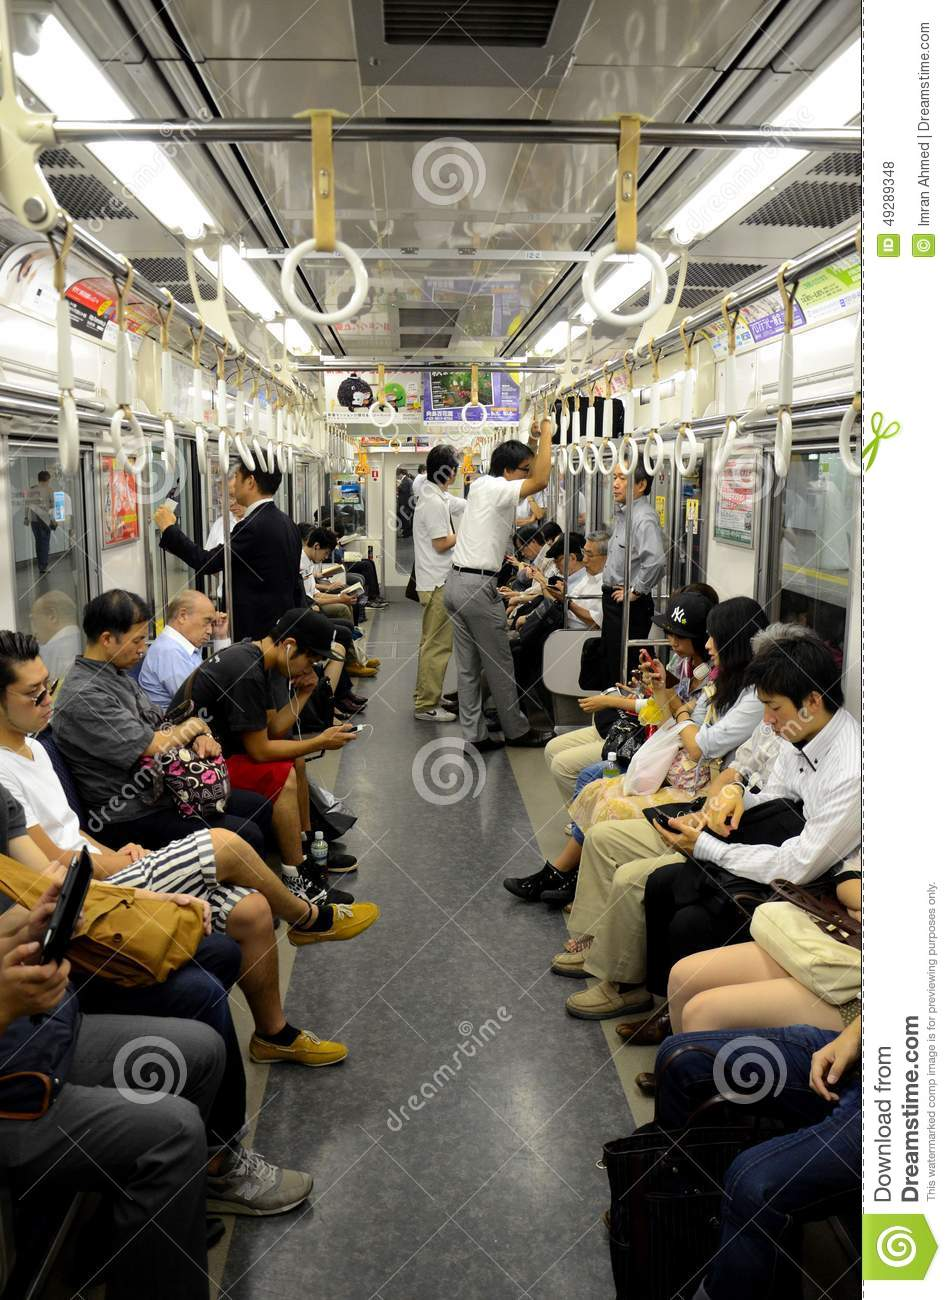 Underground Subway Train Carriage With People In Tokyo